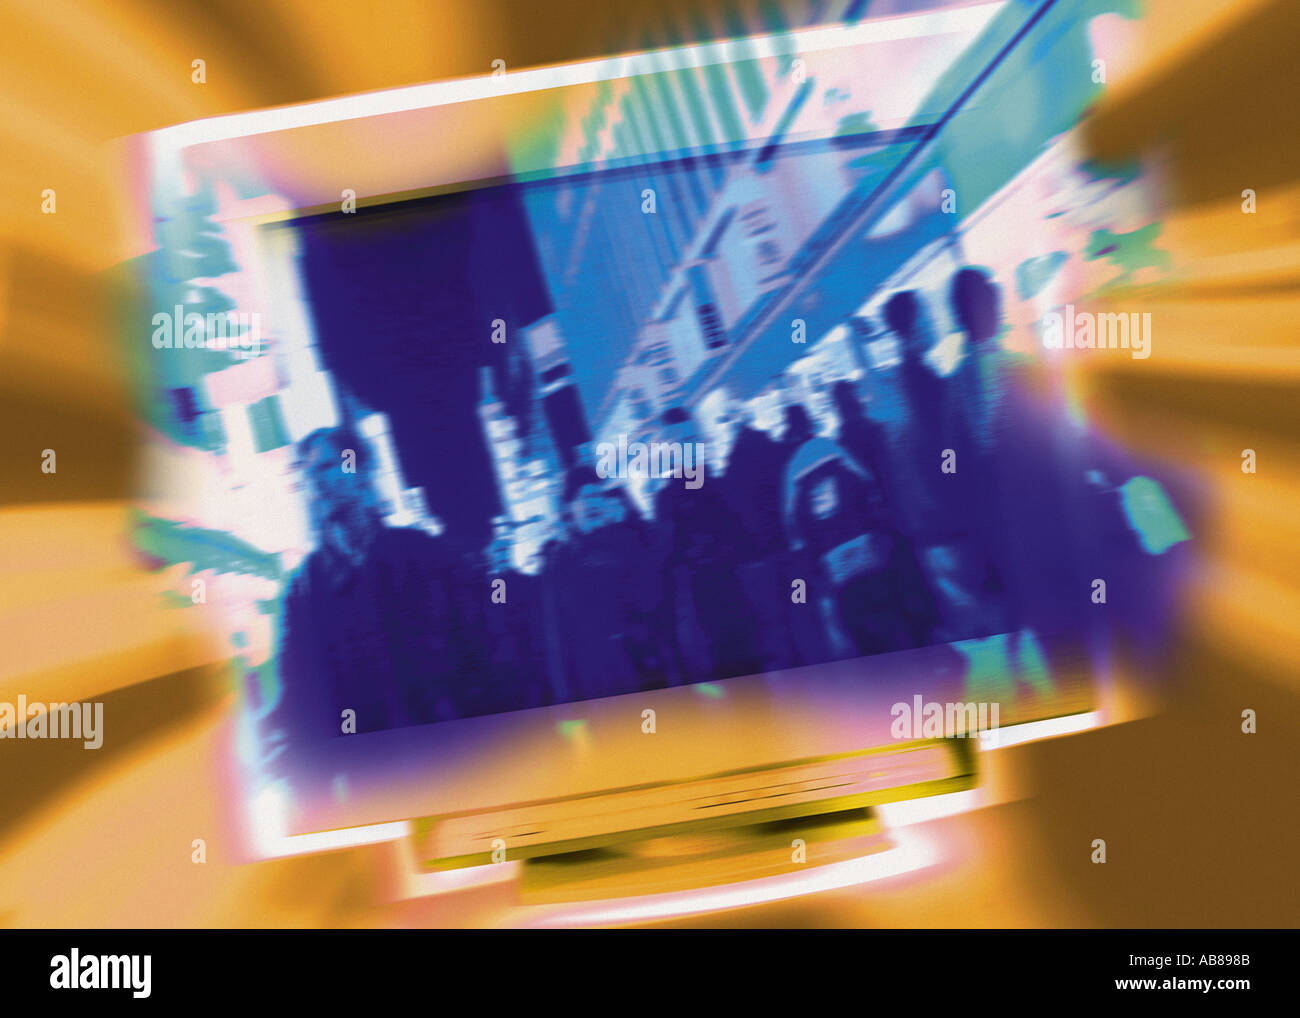 Computer screen - Stock Image